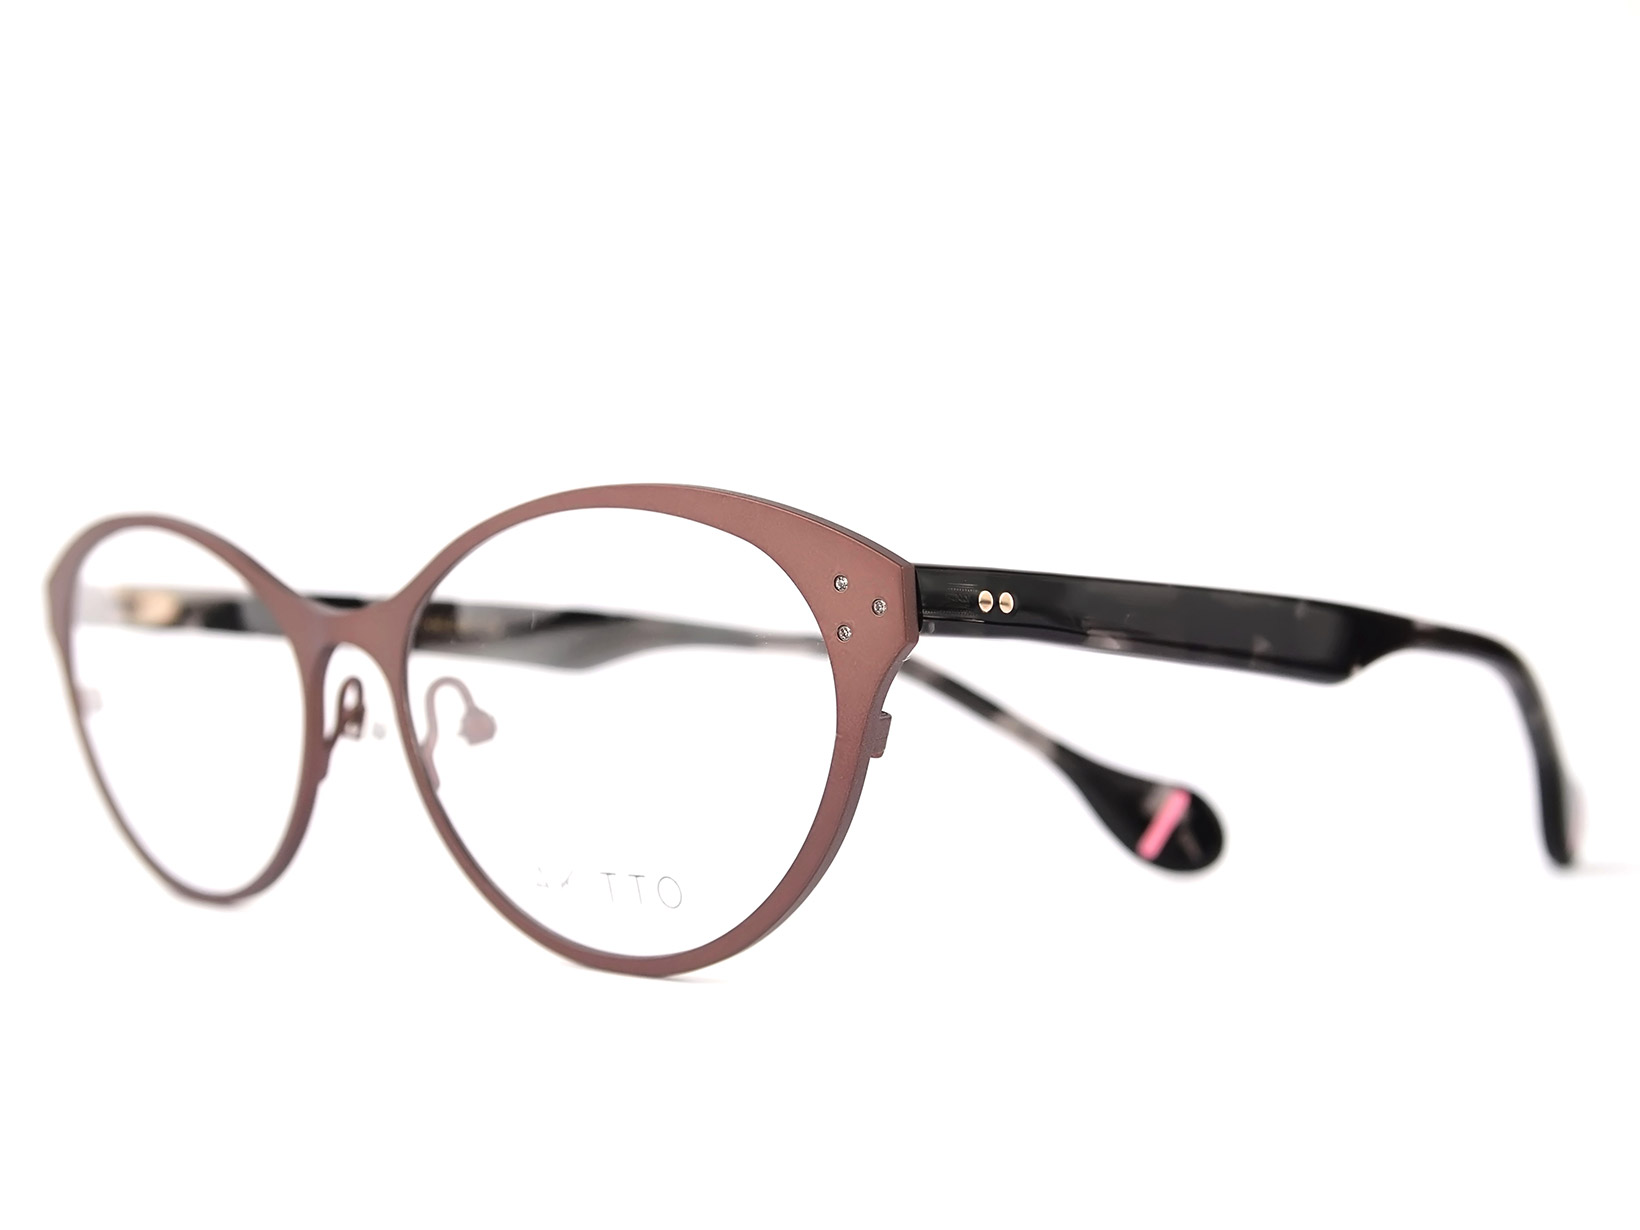 AKITTO 2016-2nd mai color|LB size:53□16 material:titanium+acetate price:42,000-(+tax)